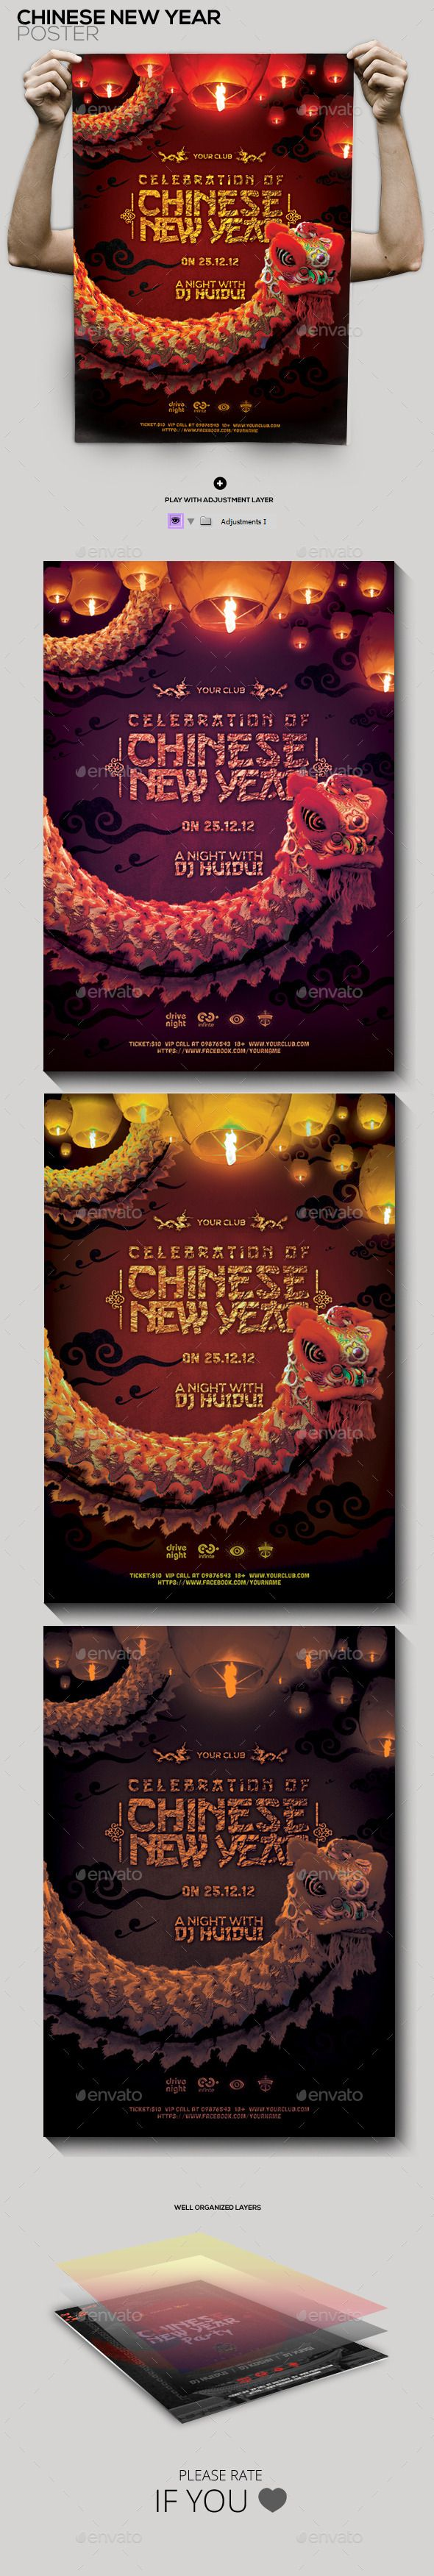 Chinese New Year Celebration Flyer/Poster — Photoshop PSD #red #new • Available here → https://graphicriver.net/item/chinese-new-year-celebration-flyerposter/9929614?ref=pxcr